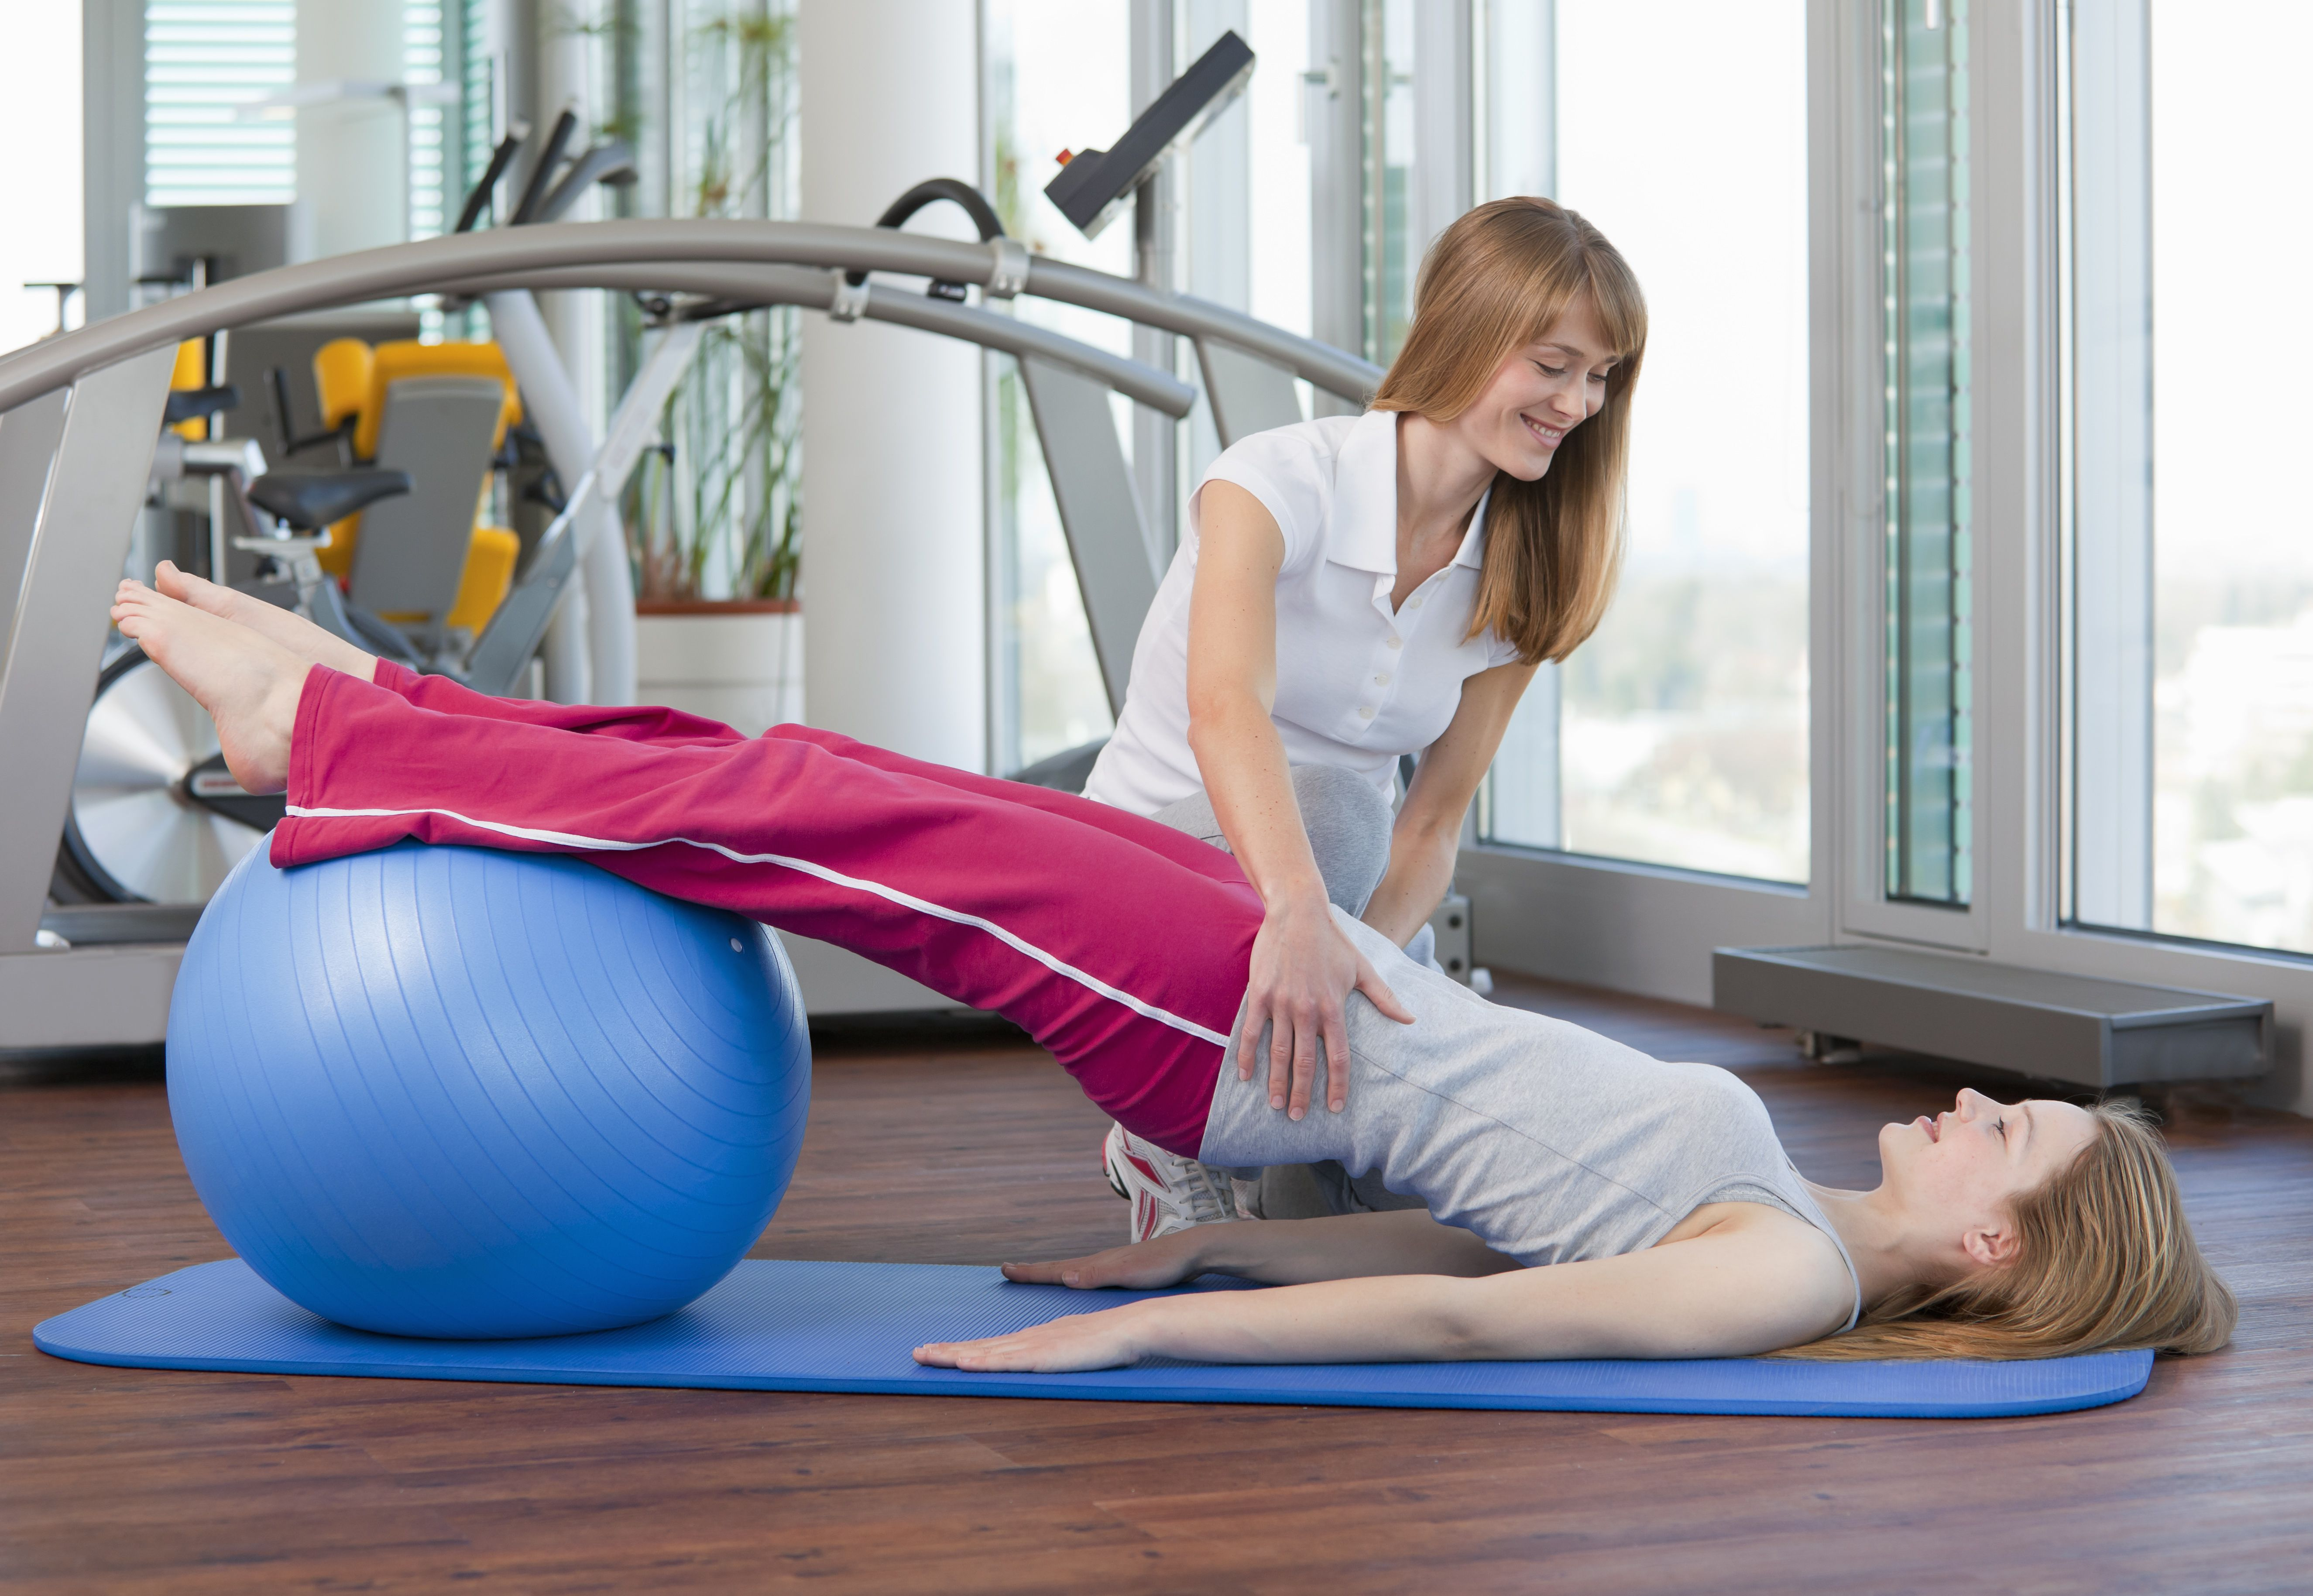 Physical Therapy Exercises For Fai And Hip Impingement